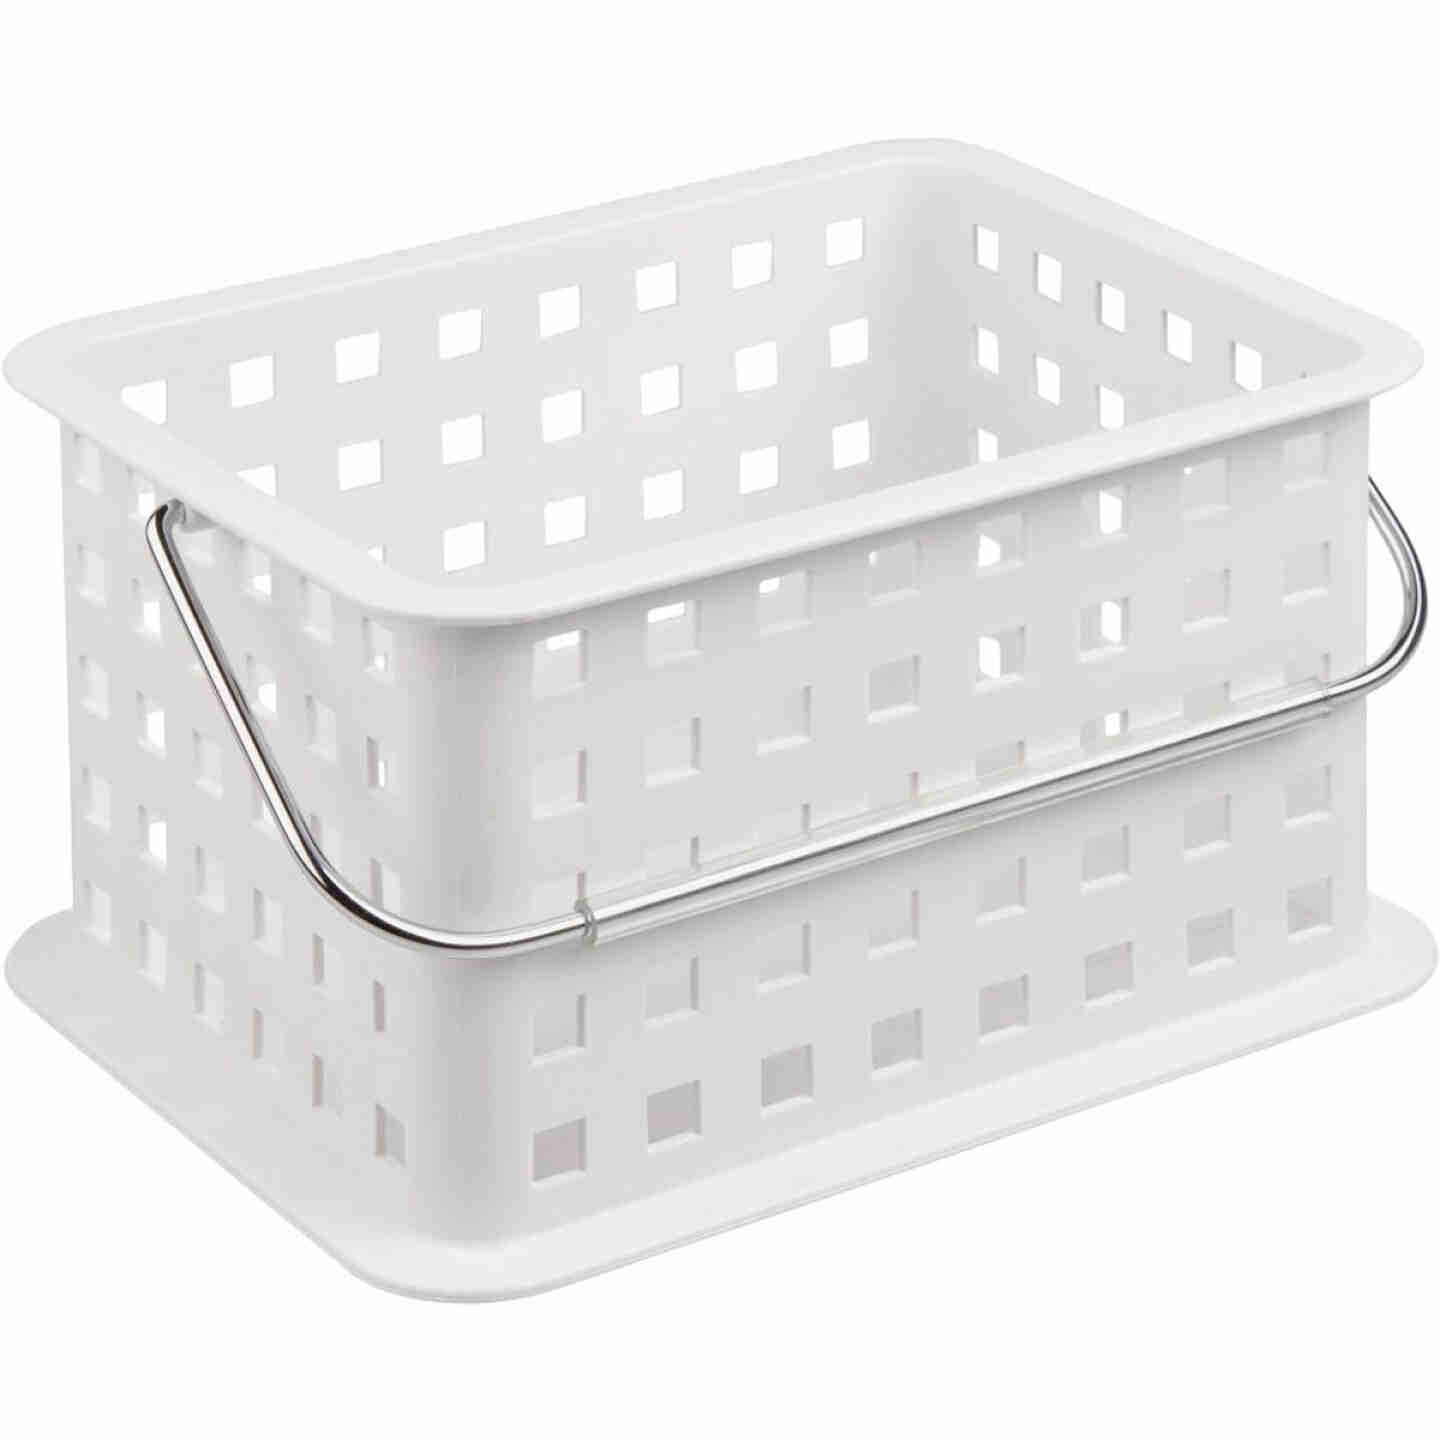 InterDesign Small White Plastic Basket Image 1